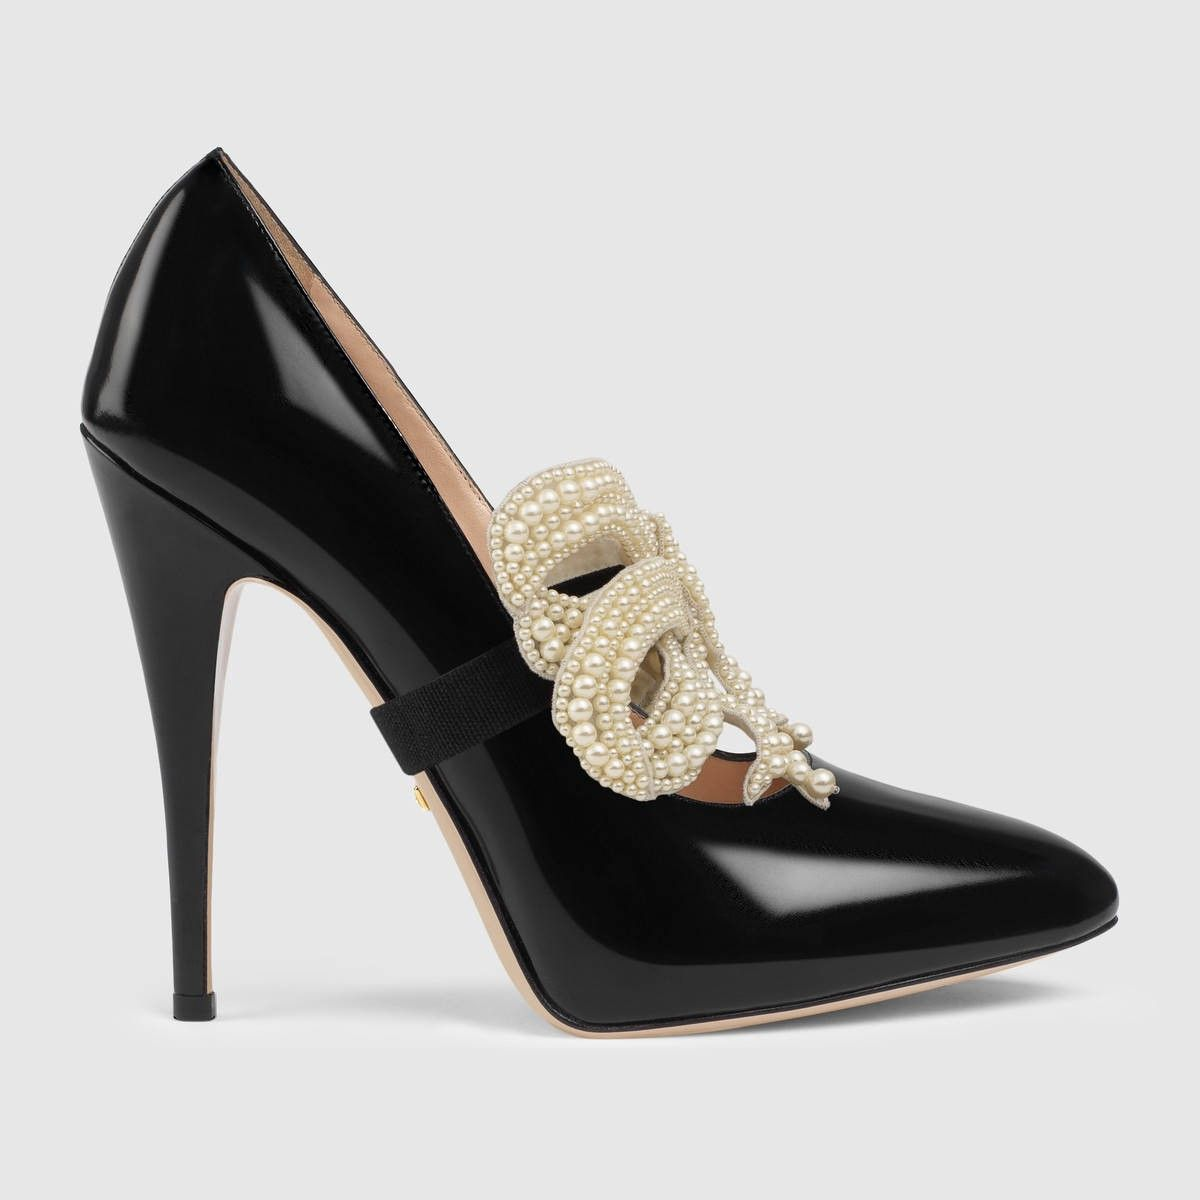 GUCCI Leather Pump With Pearl Bow